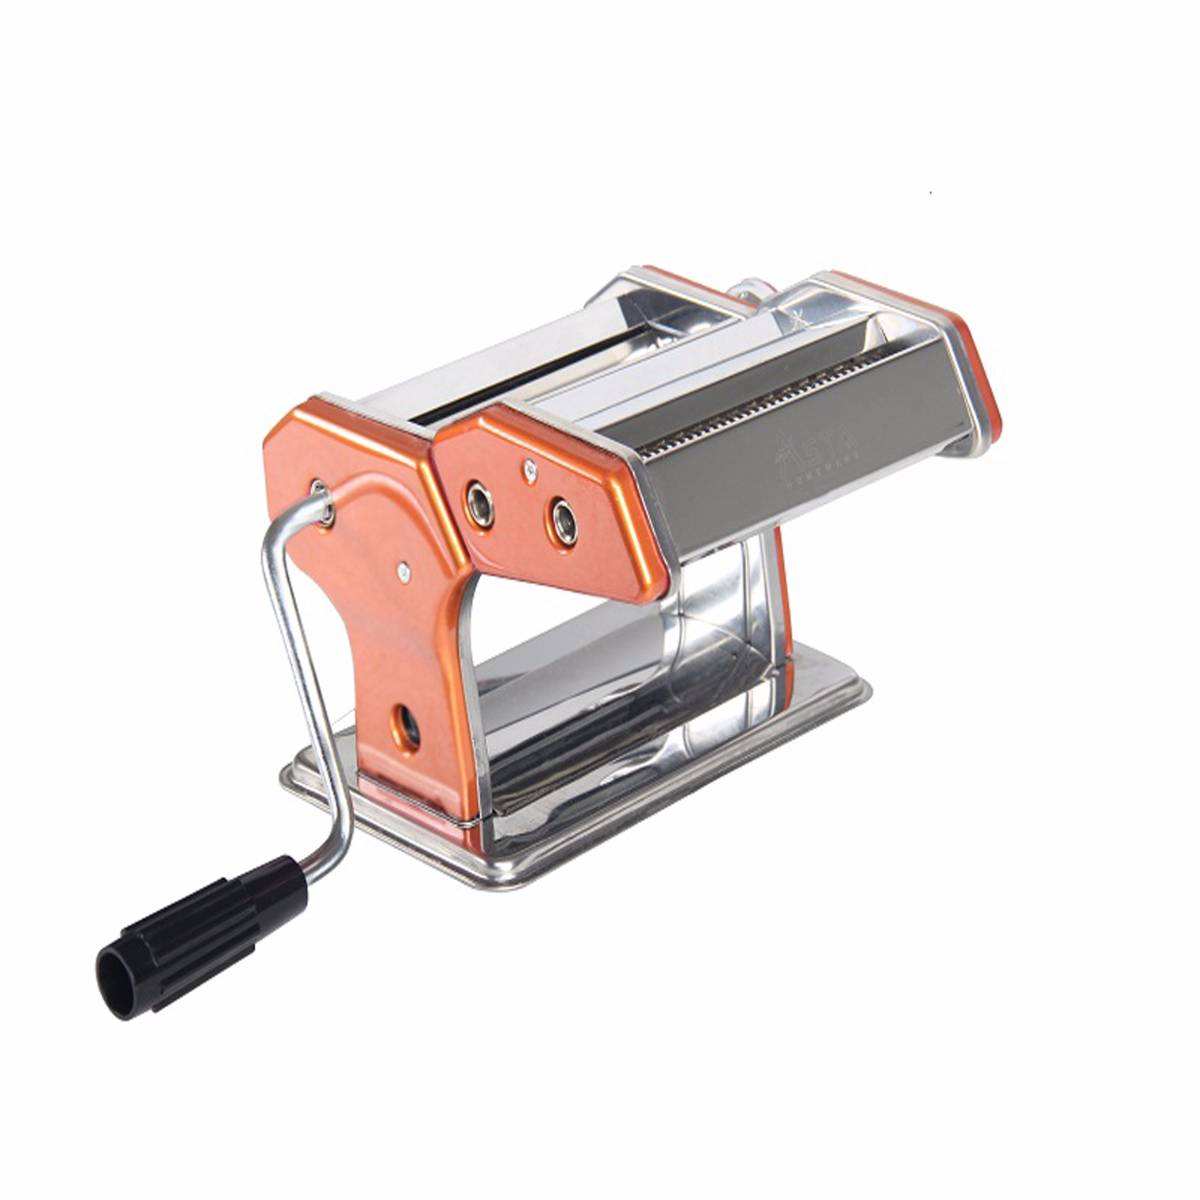 Asta Homeware Gilingan Mie / Pasta Maker ( Red , Orange & Silver/stainless Steel )0